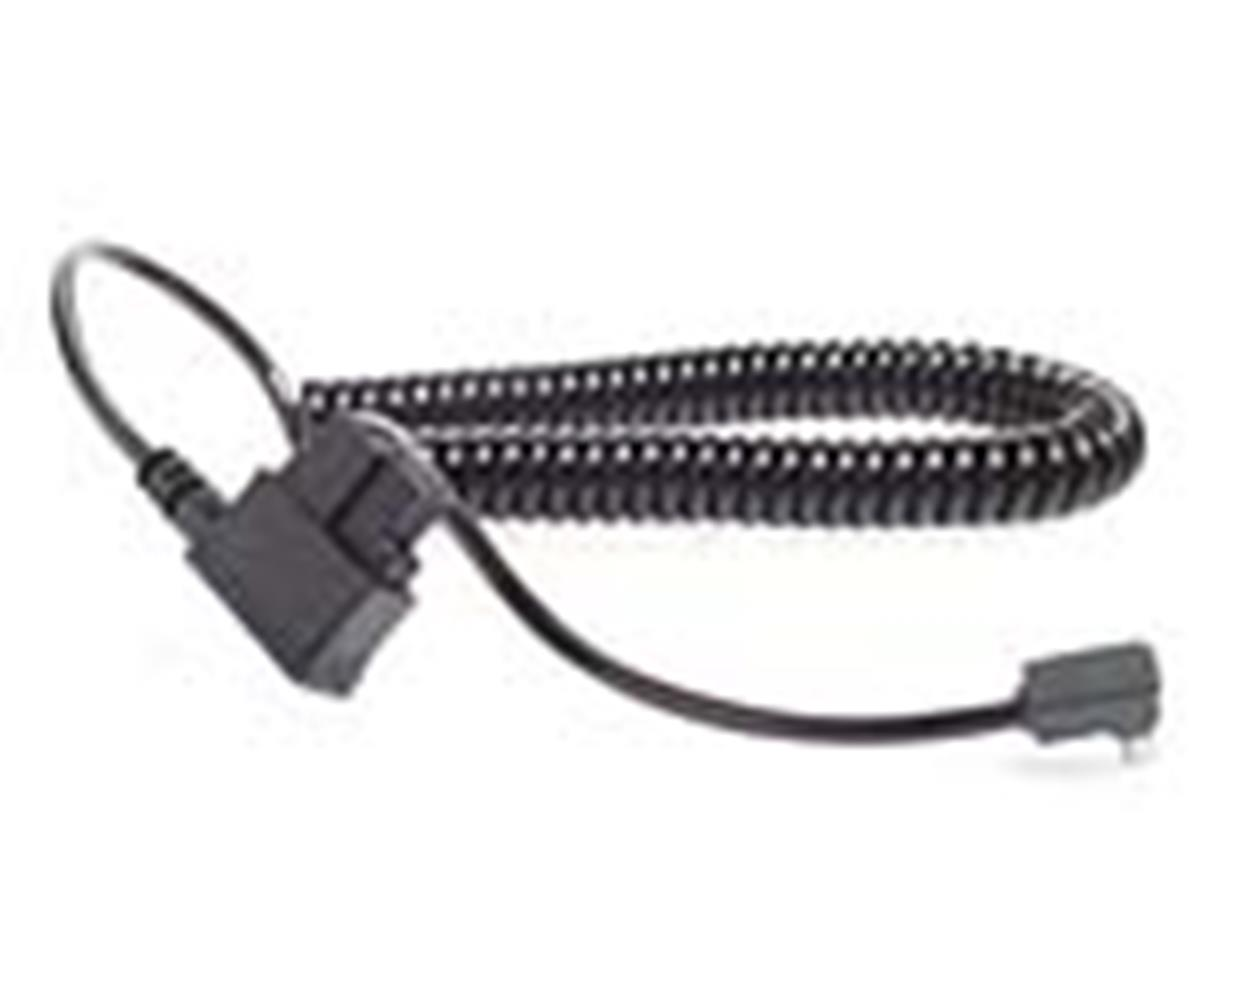 METZ 45-52 SYNC CORD COILED (FOR 45-CT1)